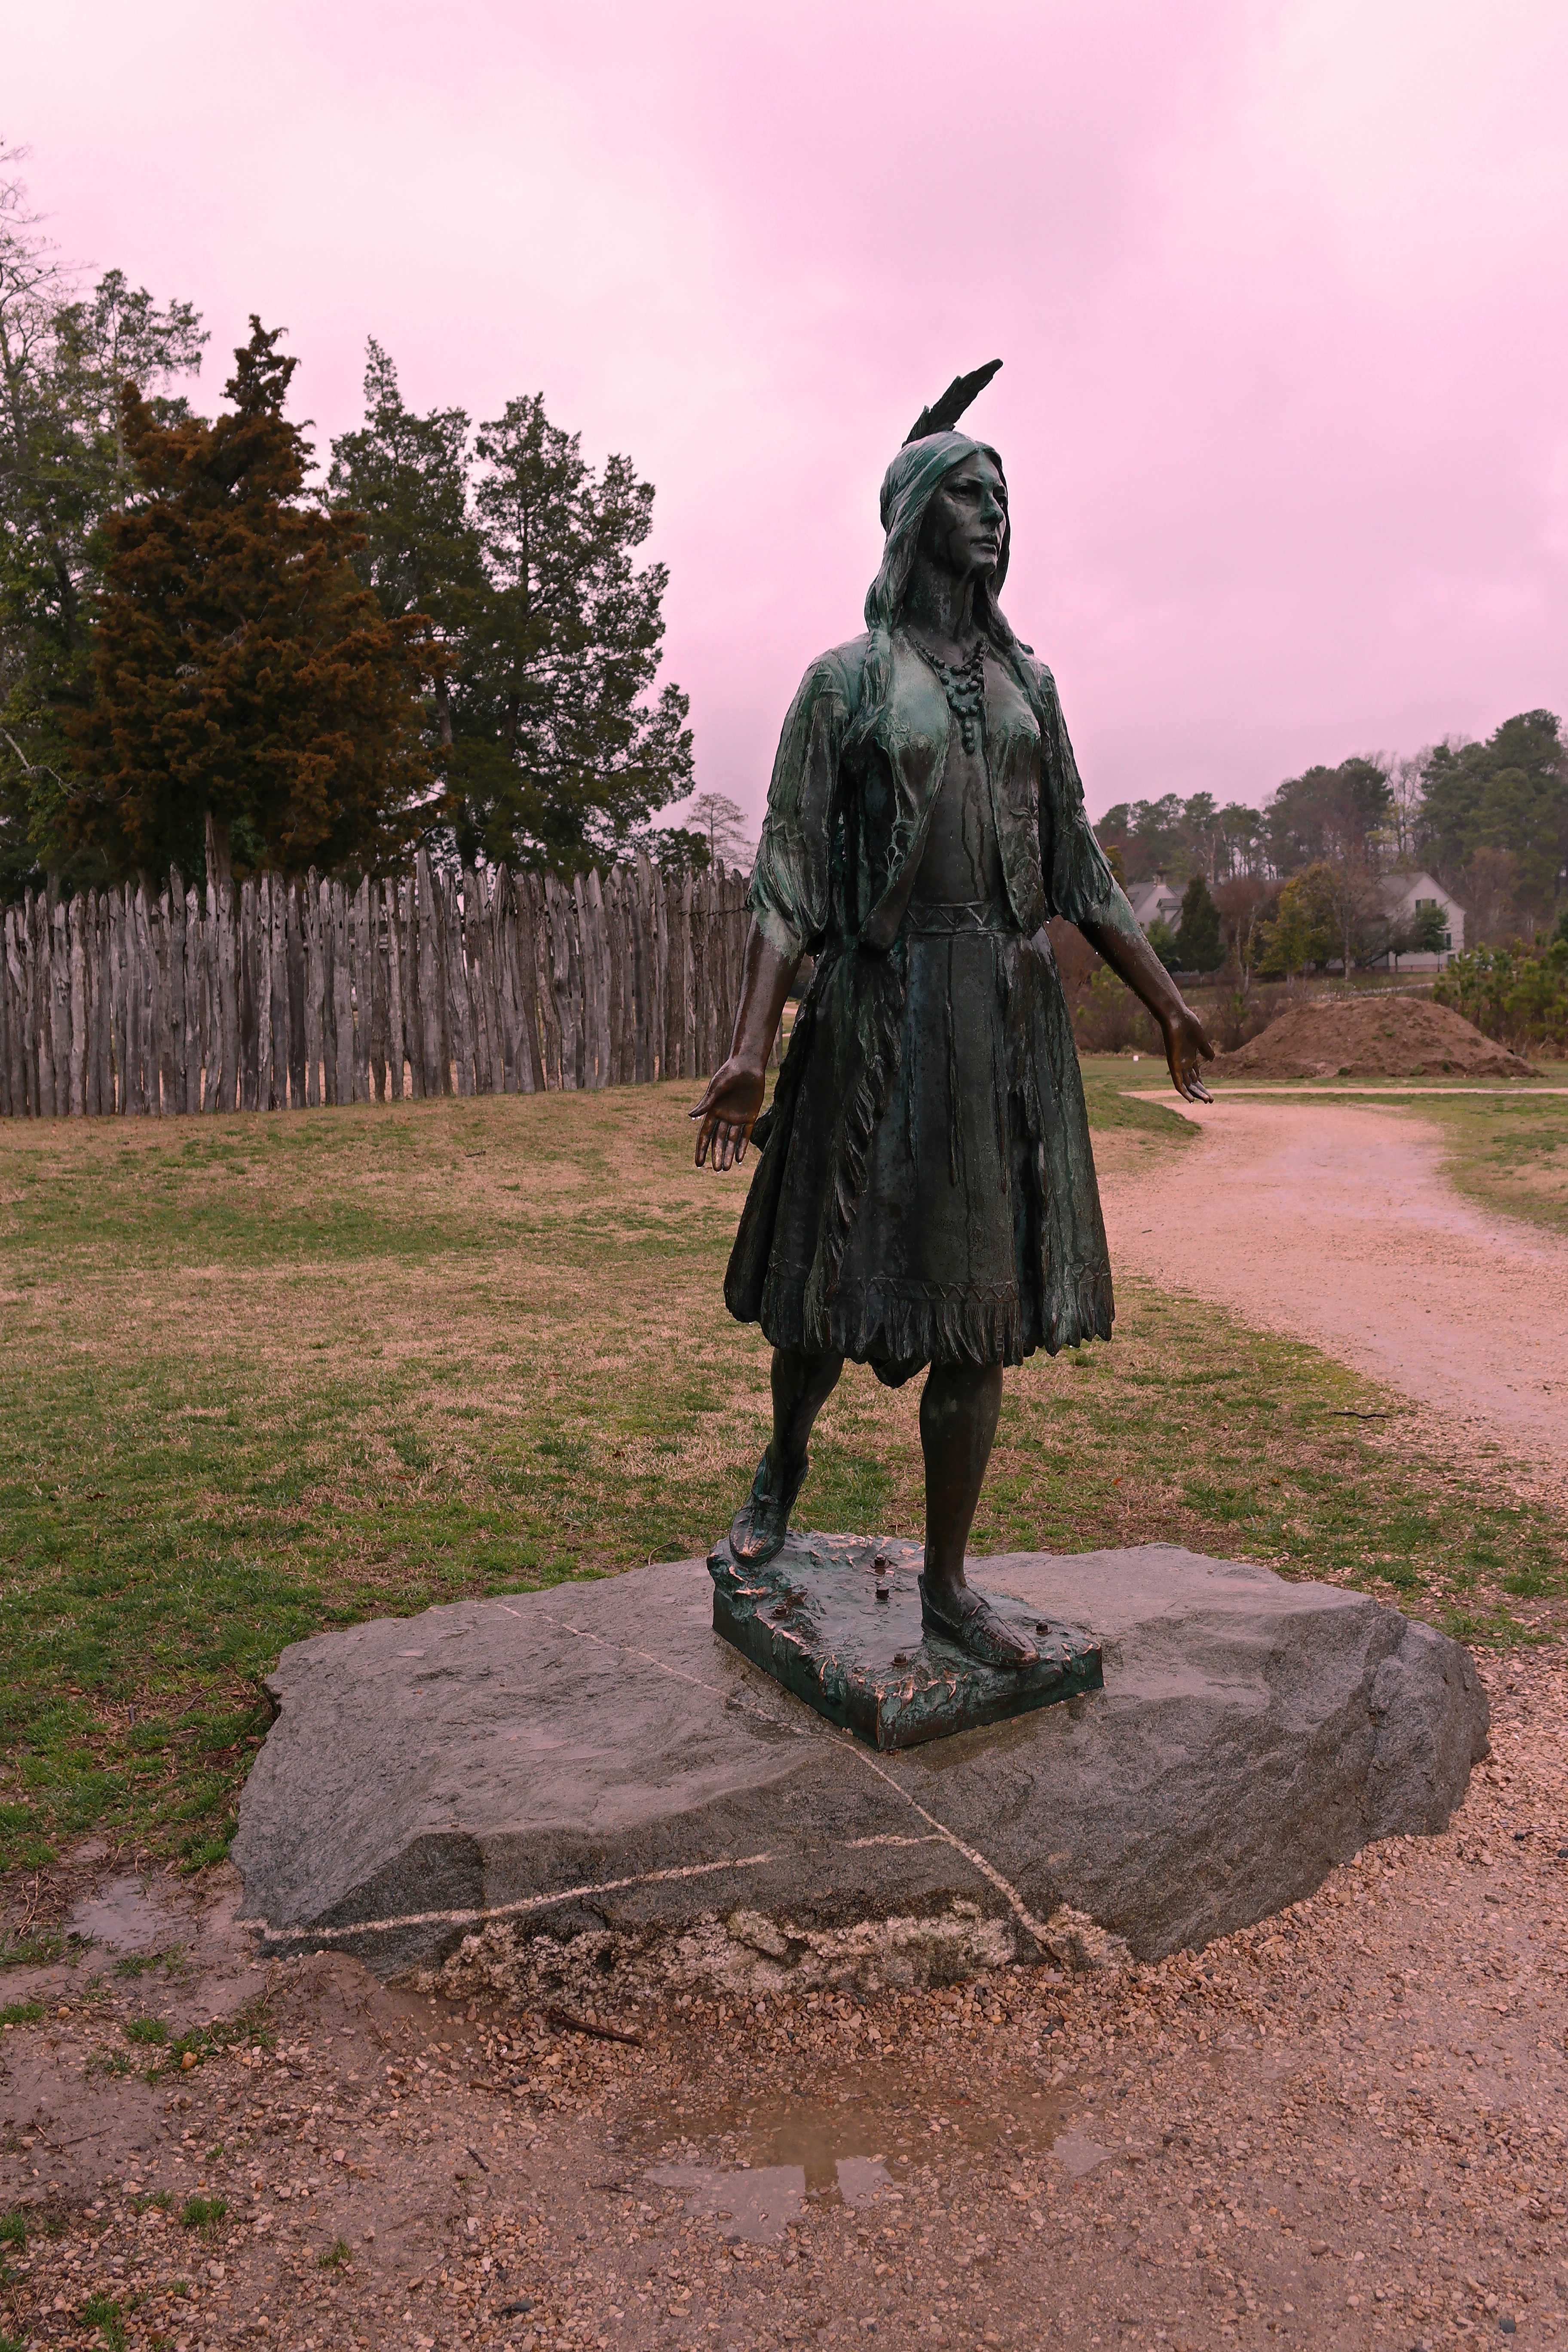 Pocahontas, Historic Jamestown photograph by Smash the Iron Cage on Wikimedia Commons (CC BY-SA 4.0)